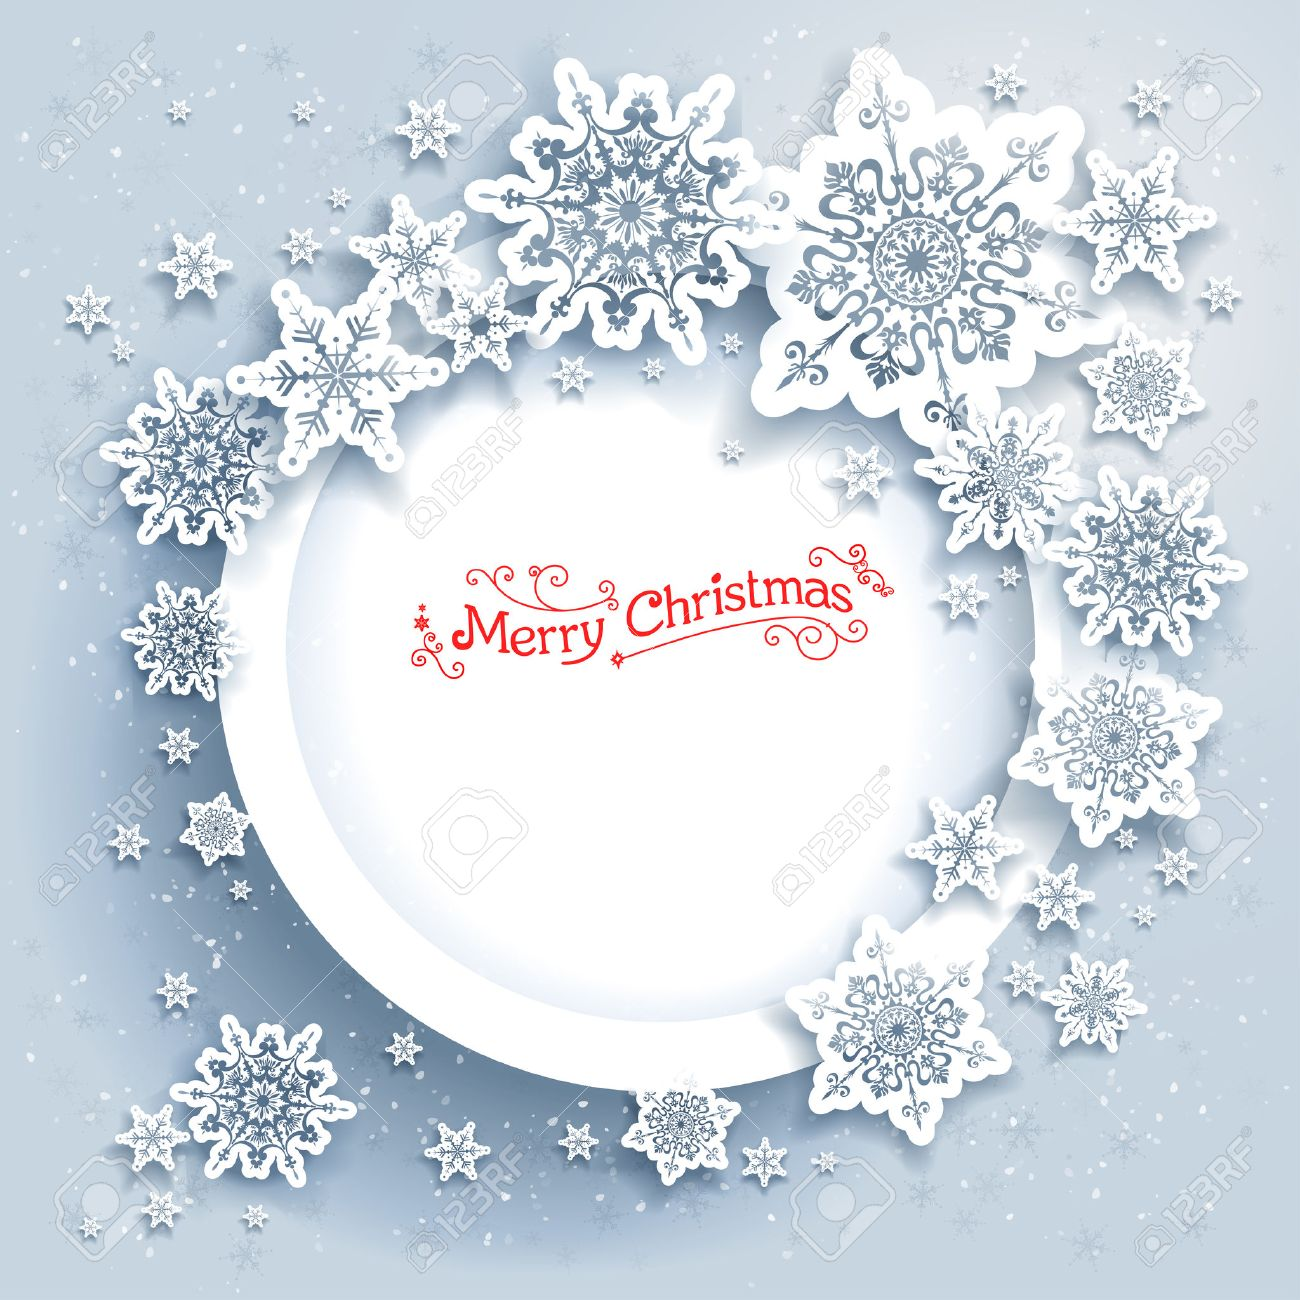 Snowflakes holiday frame. Winter holiday card for web, banner, invitation, leaflet and so on. Christmas background. - 47694132